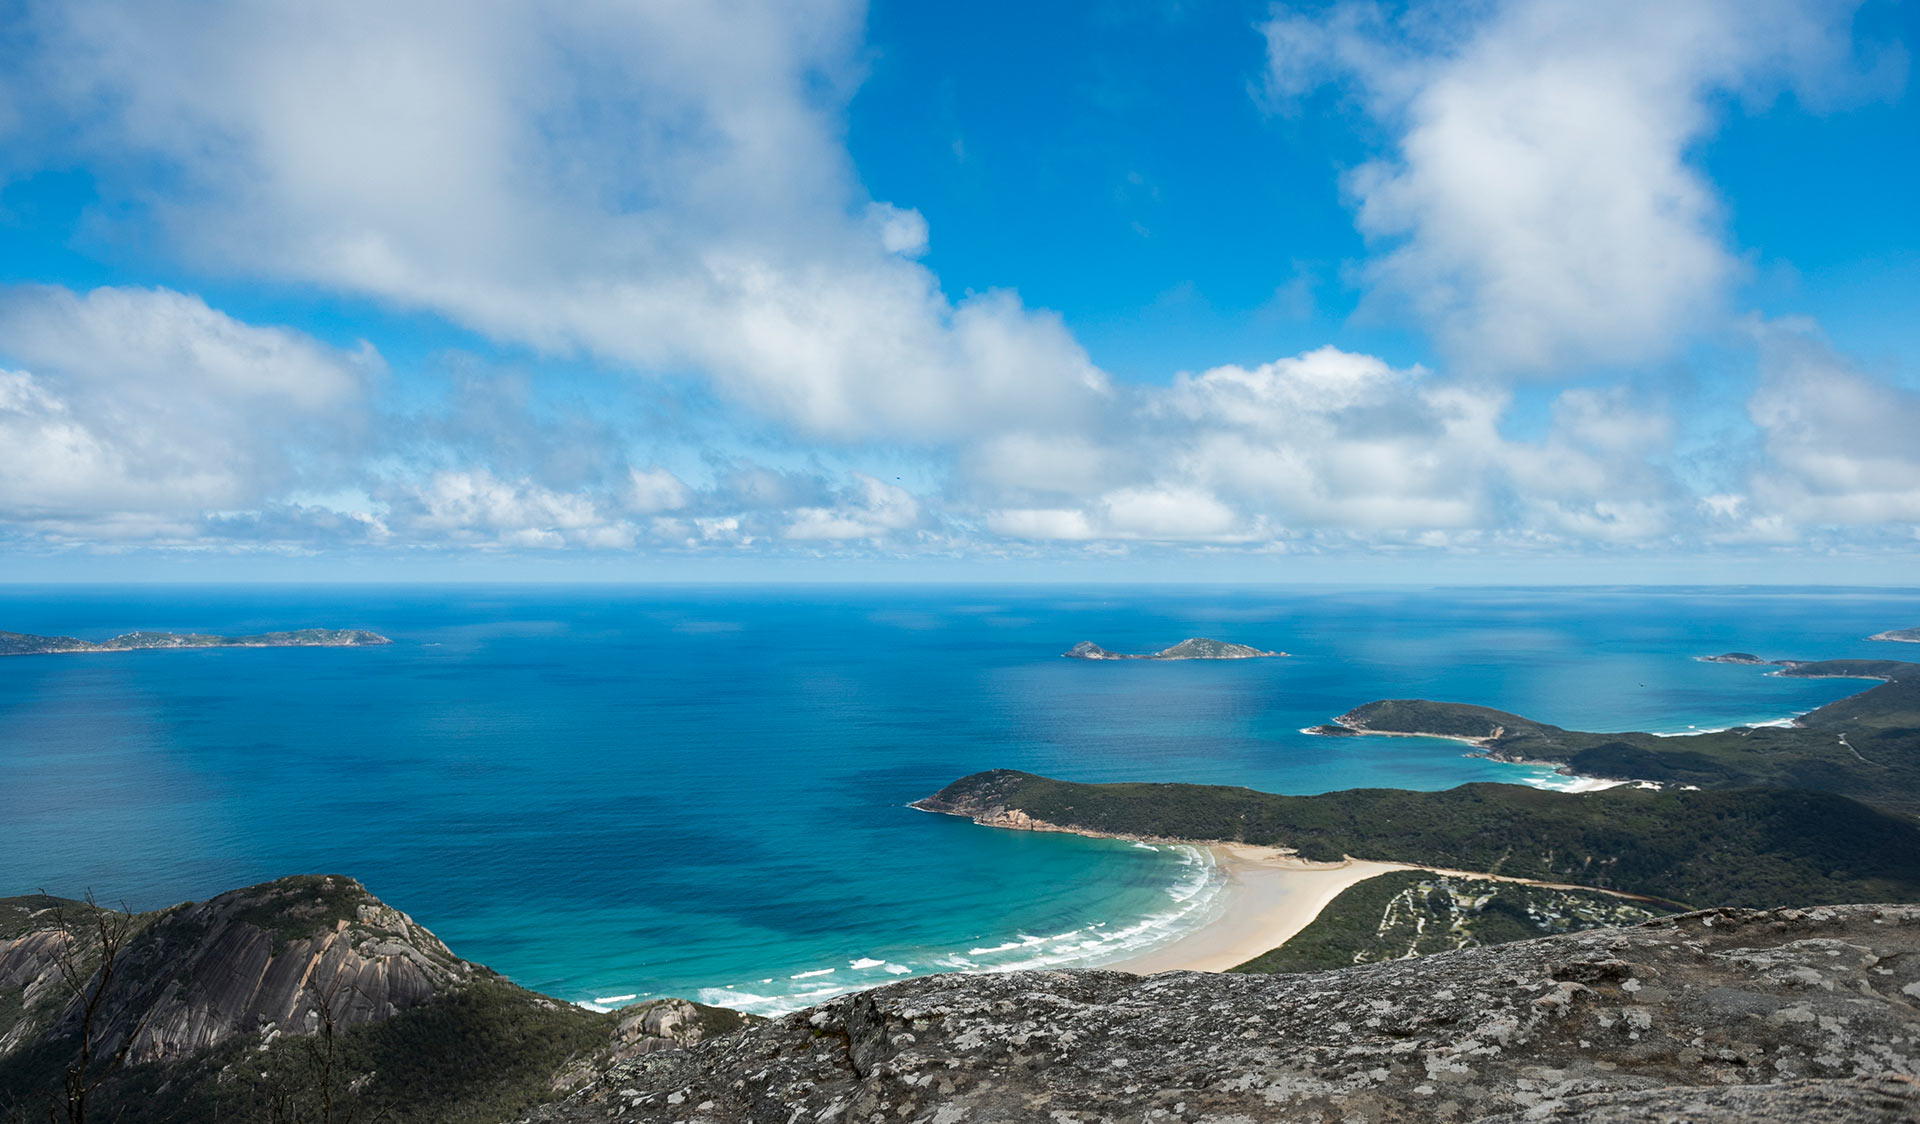 The view of Norman Beach from the summit of Mount Oberon.